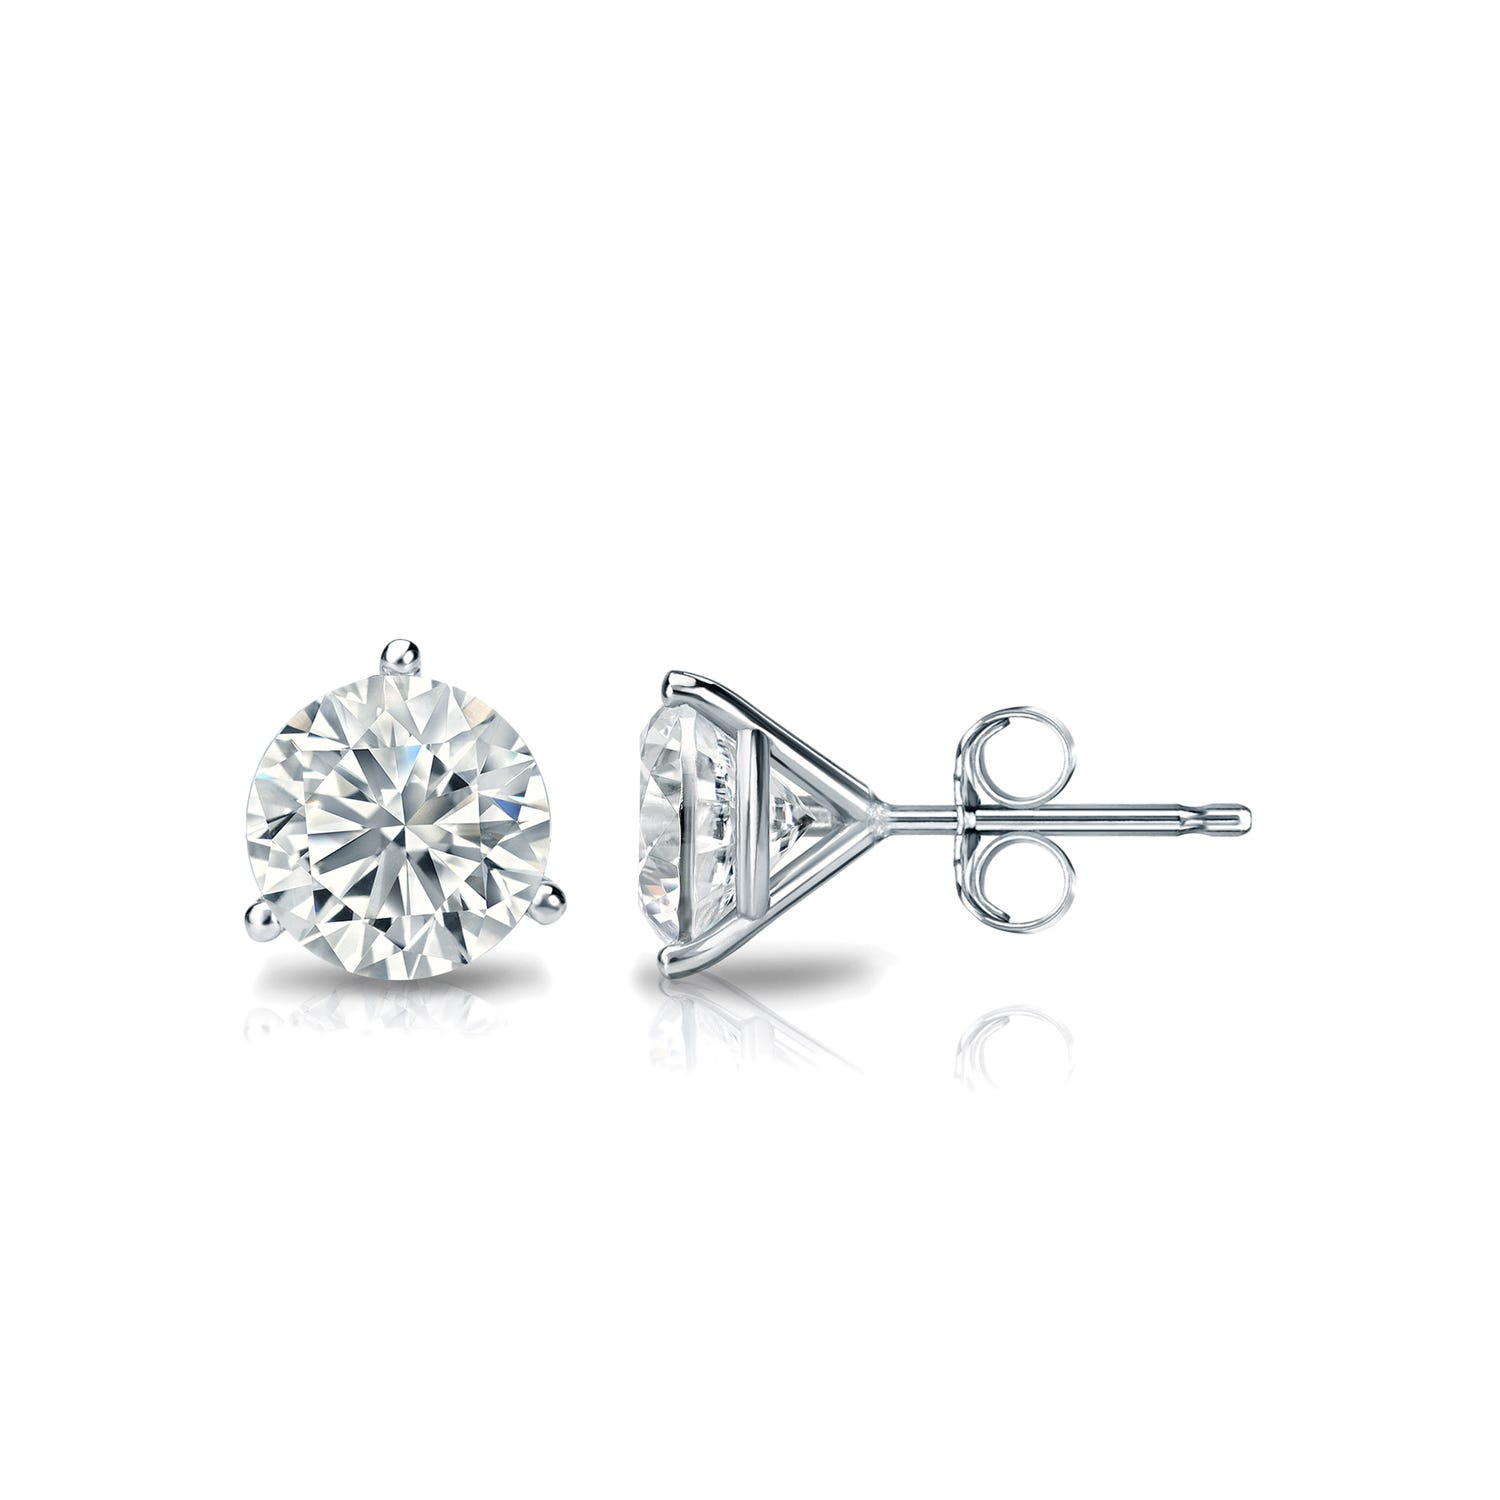 3/4 CTTW Round Diamond Solitaire Stud Earrings IJ SI1 in 18K White Gold IGI Certified 3-Prong Setting